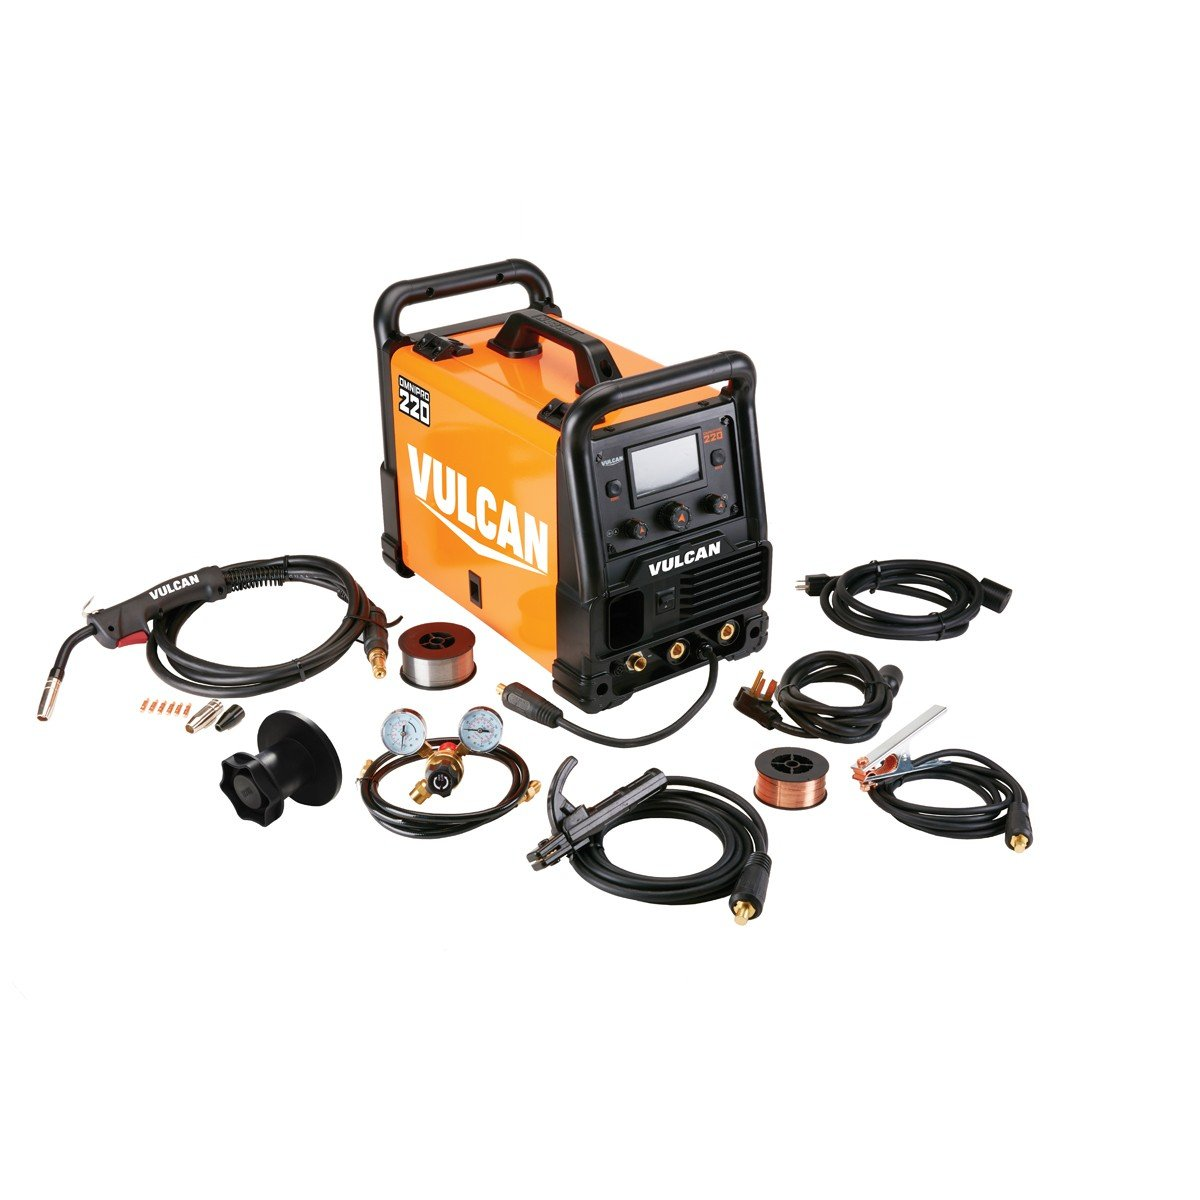 Vulcan OmniPro 220 Multiprocess Welder with 120/240 Volt Input by Vulcan (Image #2)